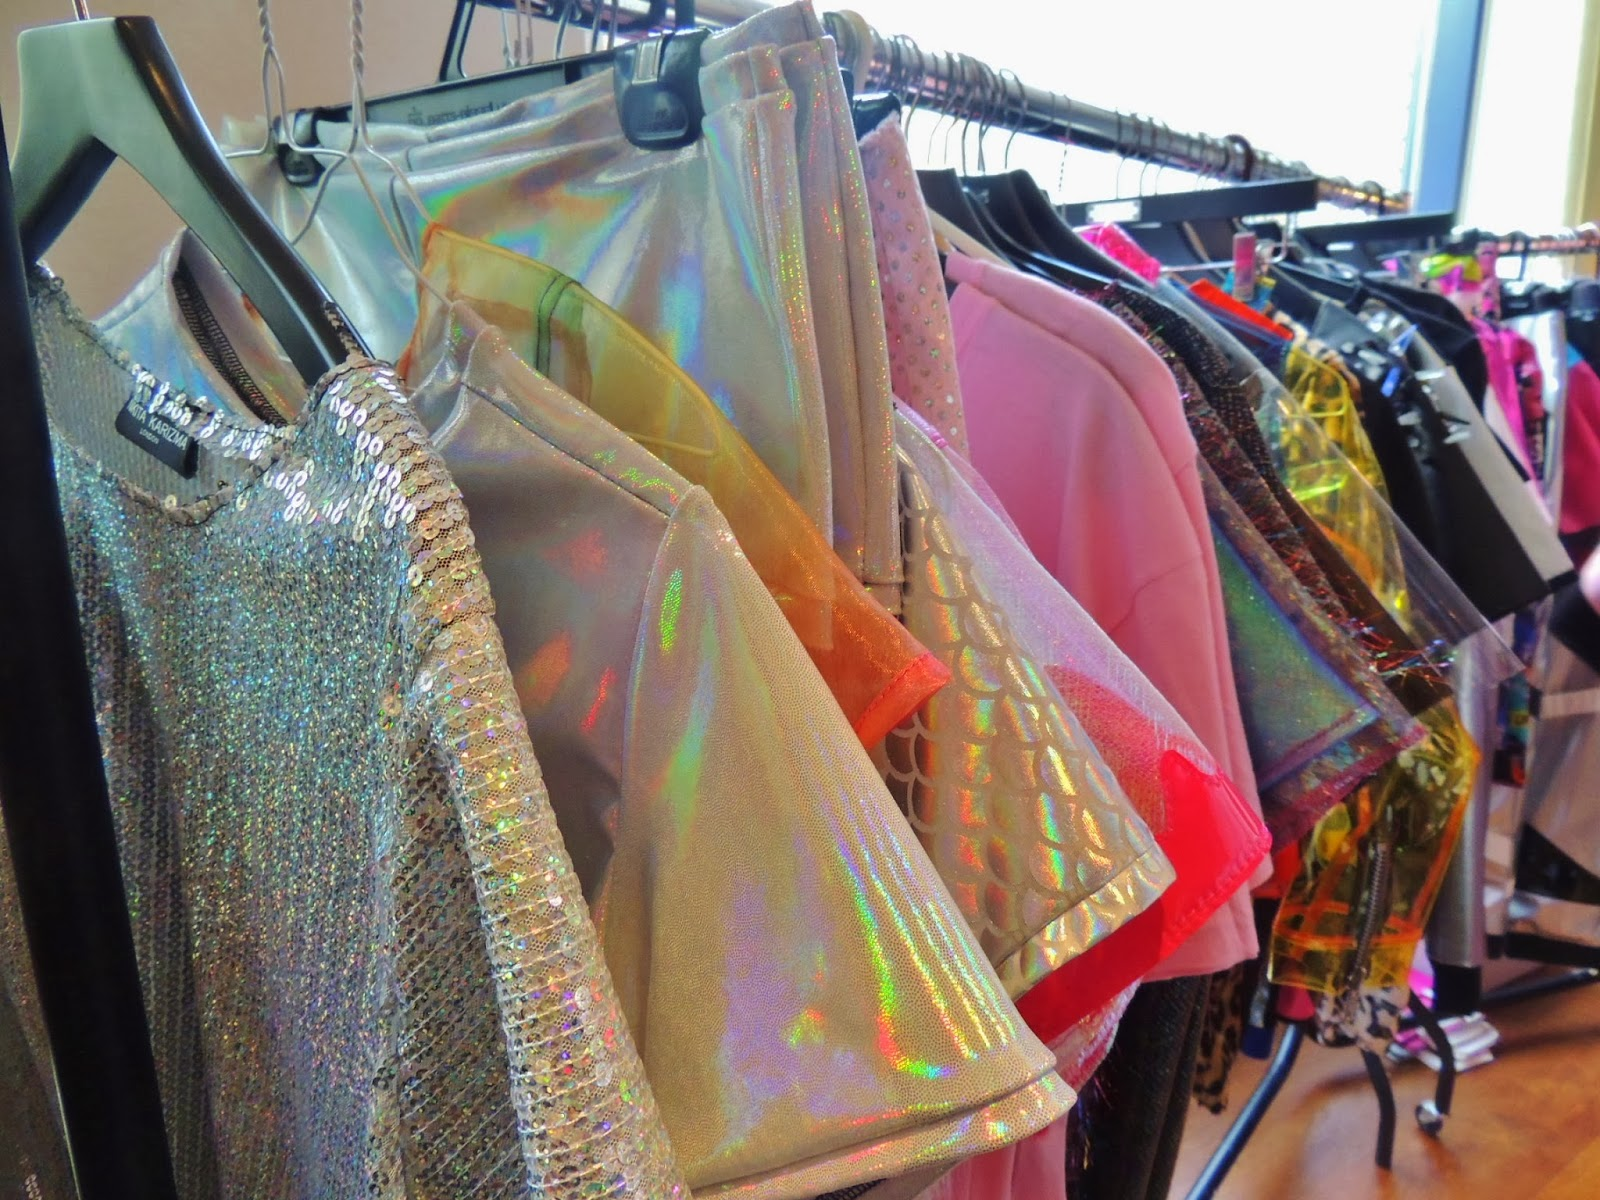 Sequin, PVC and gauze pieces on sale at The Stylists' Rail